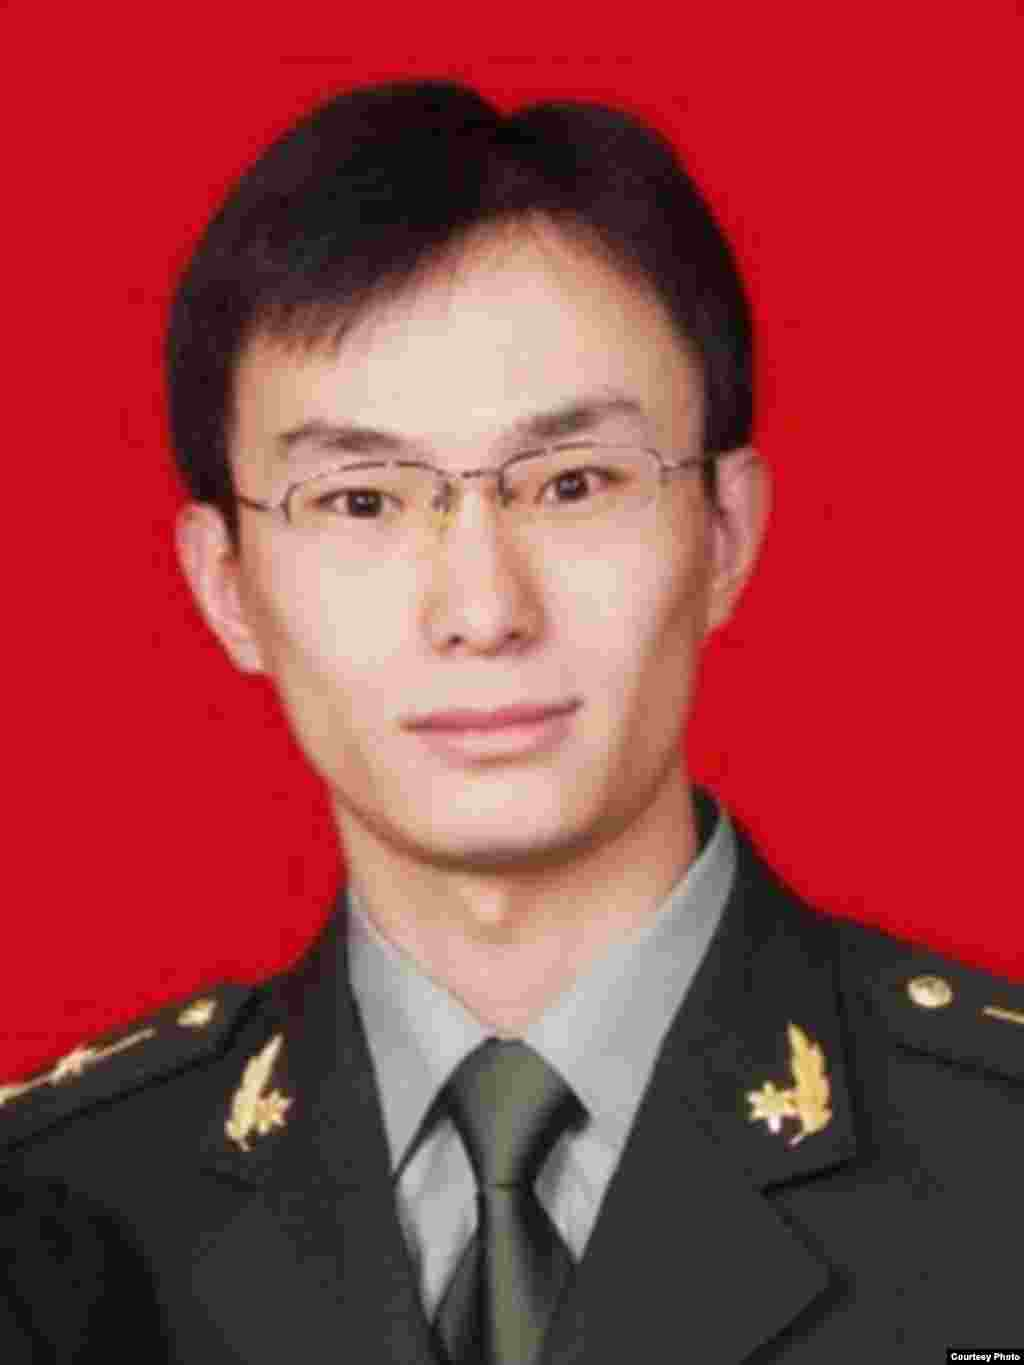 Gu Chunhui, from China's Third Department of the General Staff Department of the People's LIberation Army (3PLA), Second Bureau, Third Office, Military Unit Cover Designator (MUCD) 61398. (FBI photo)